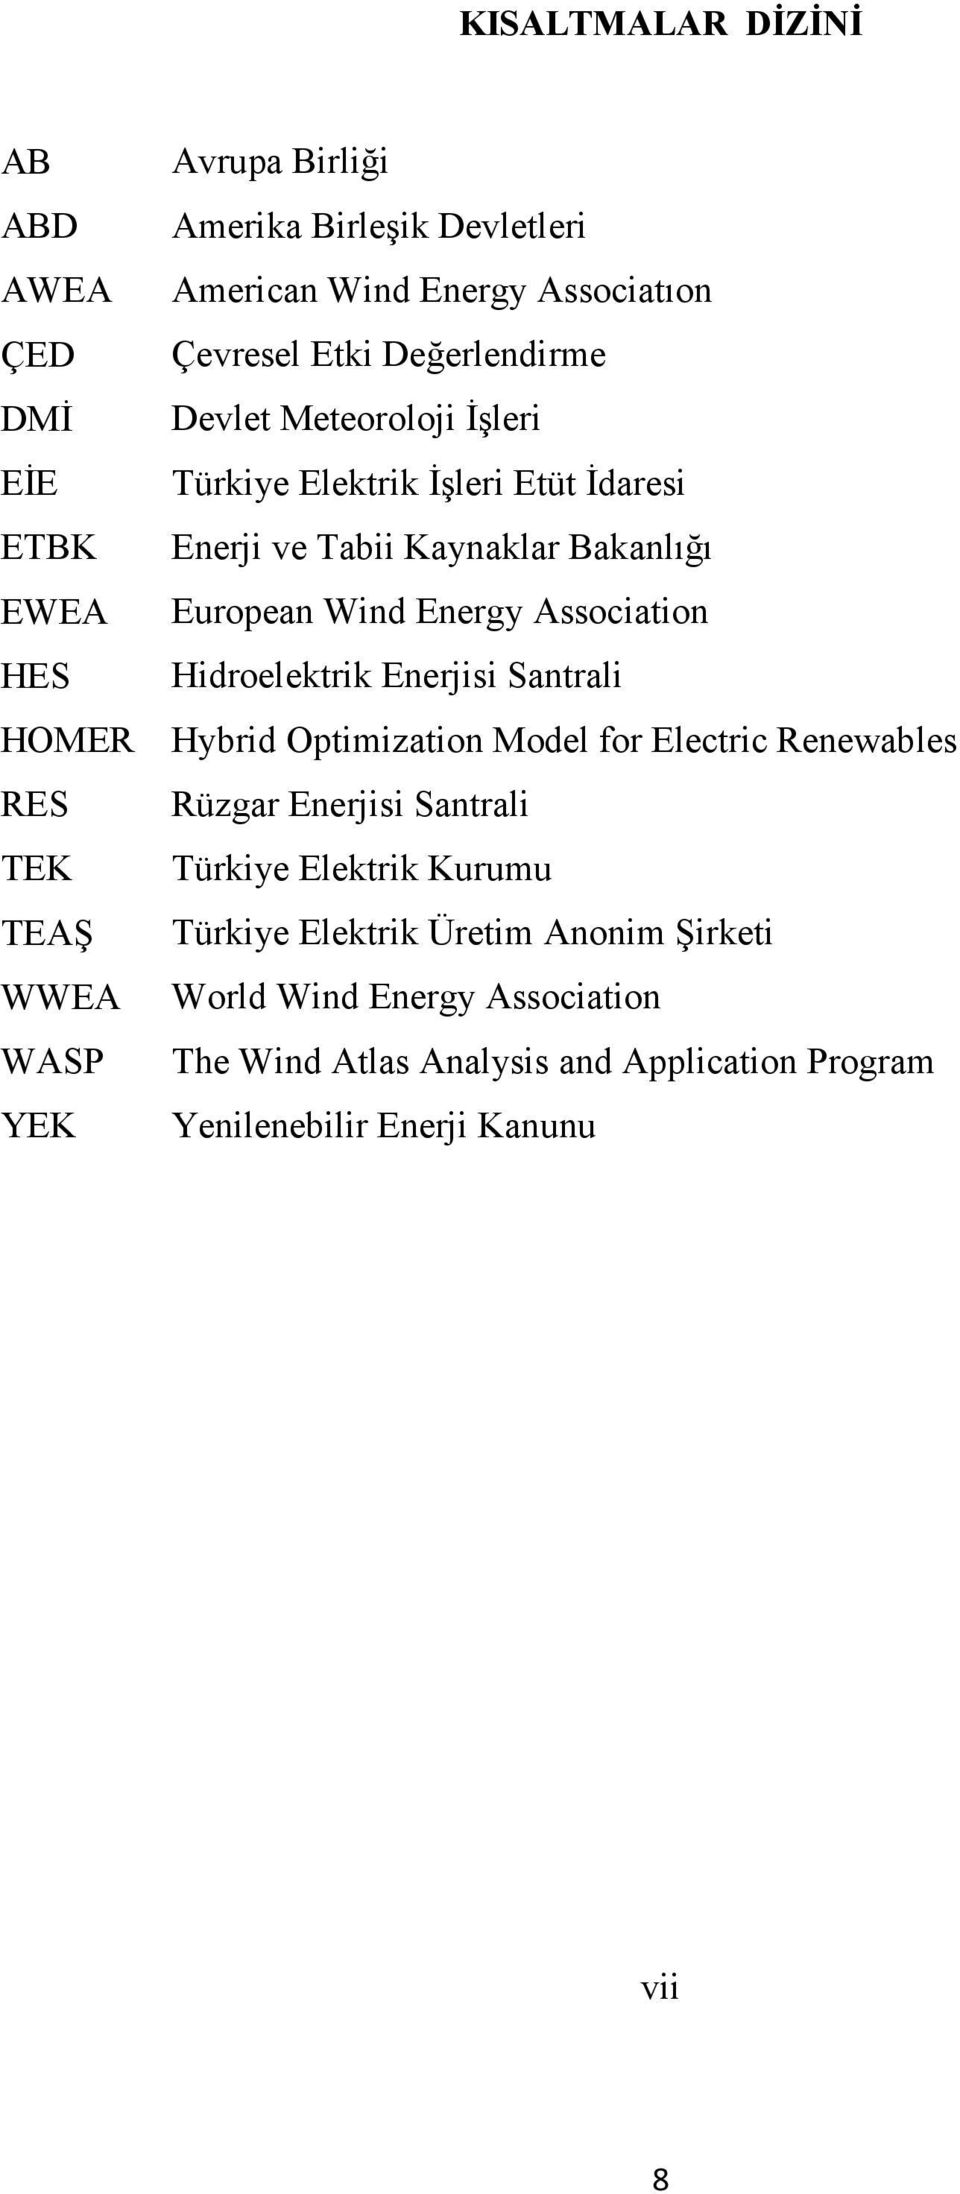 Hidroelektrik Enerjisi Santrali HOMER Hybrid Optimization Model for Electric Renewables RES Rüzgar Enerjisi Santrali TEK Türkiye Elektrik Kurumu TEAŞ